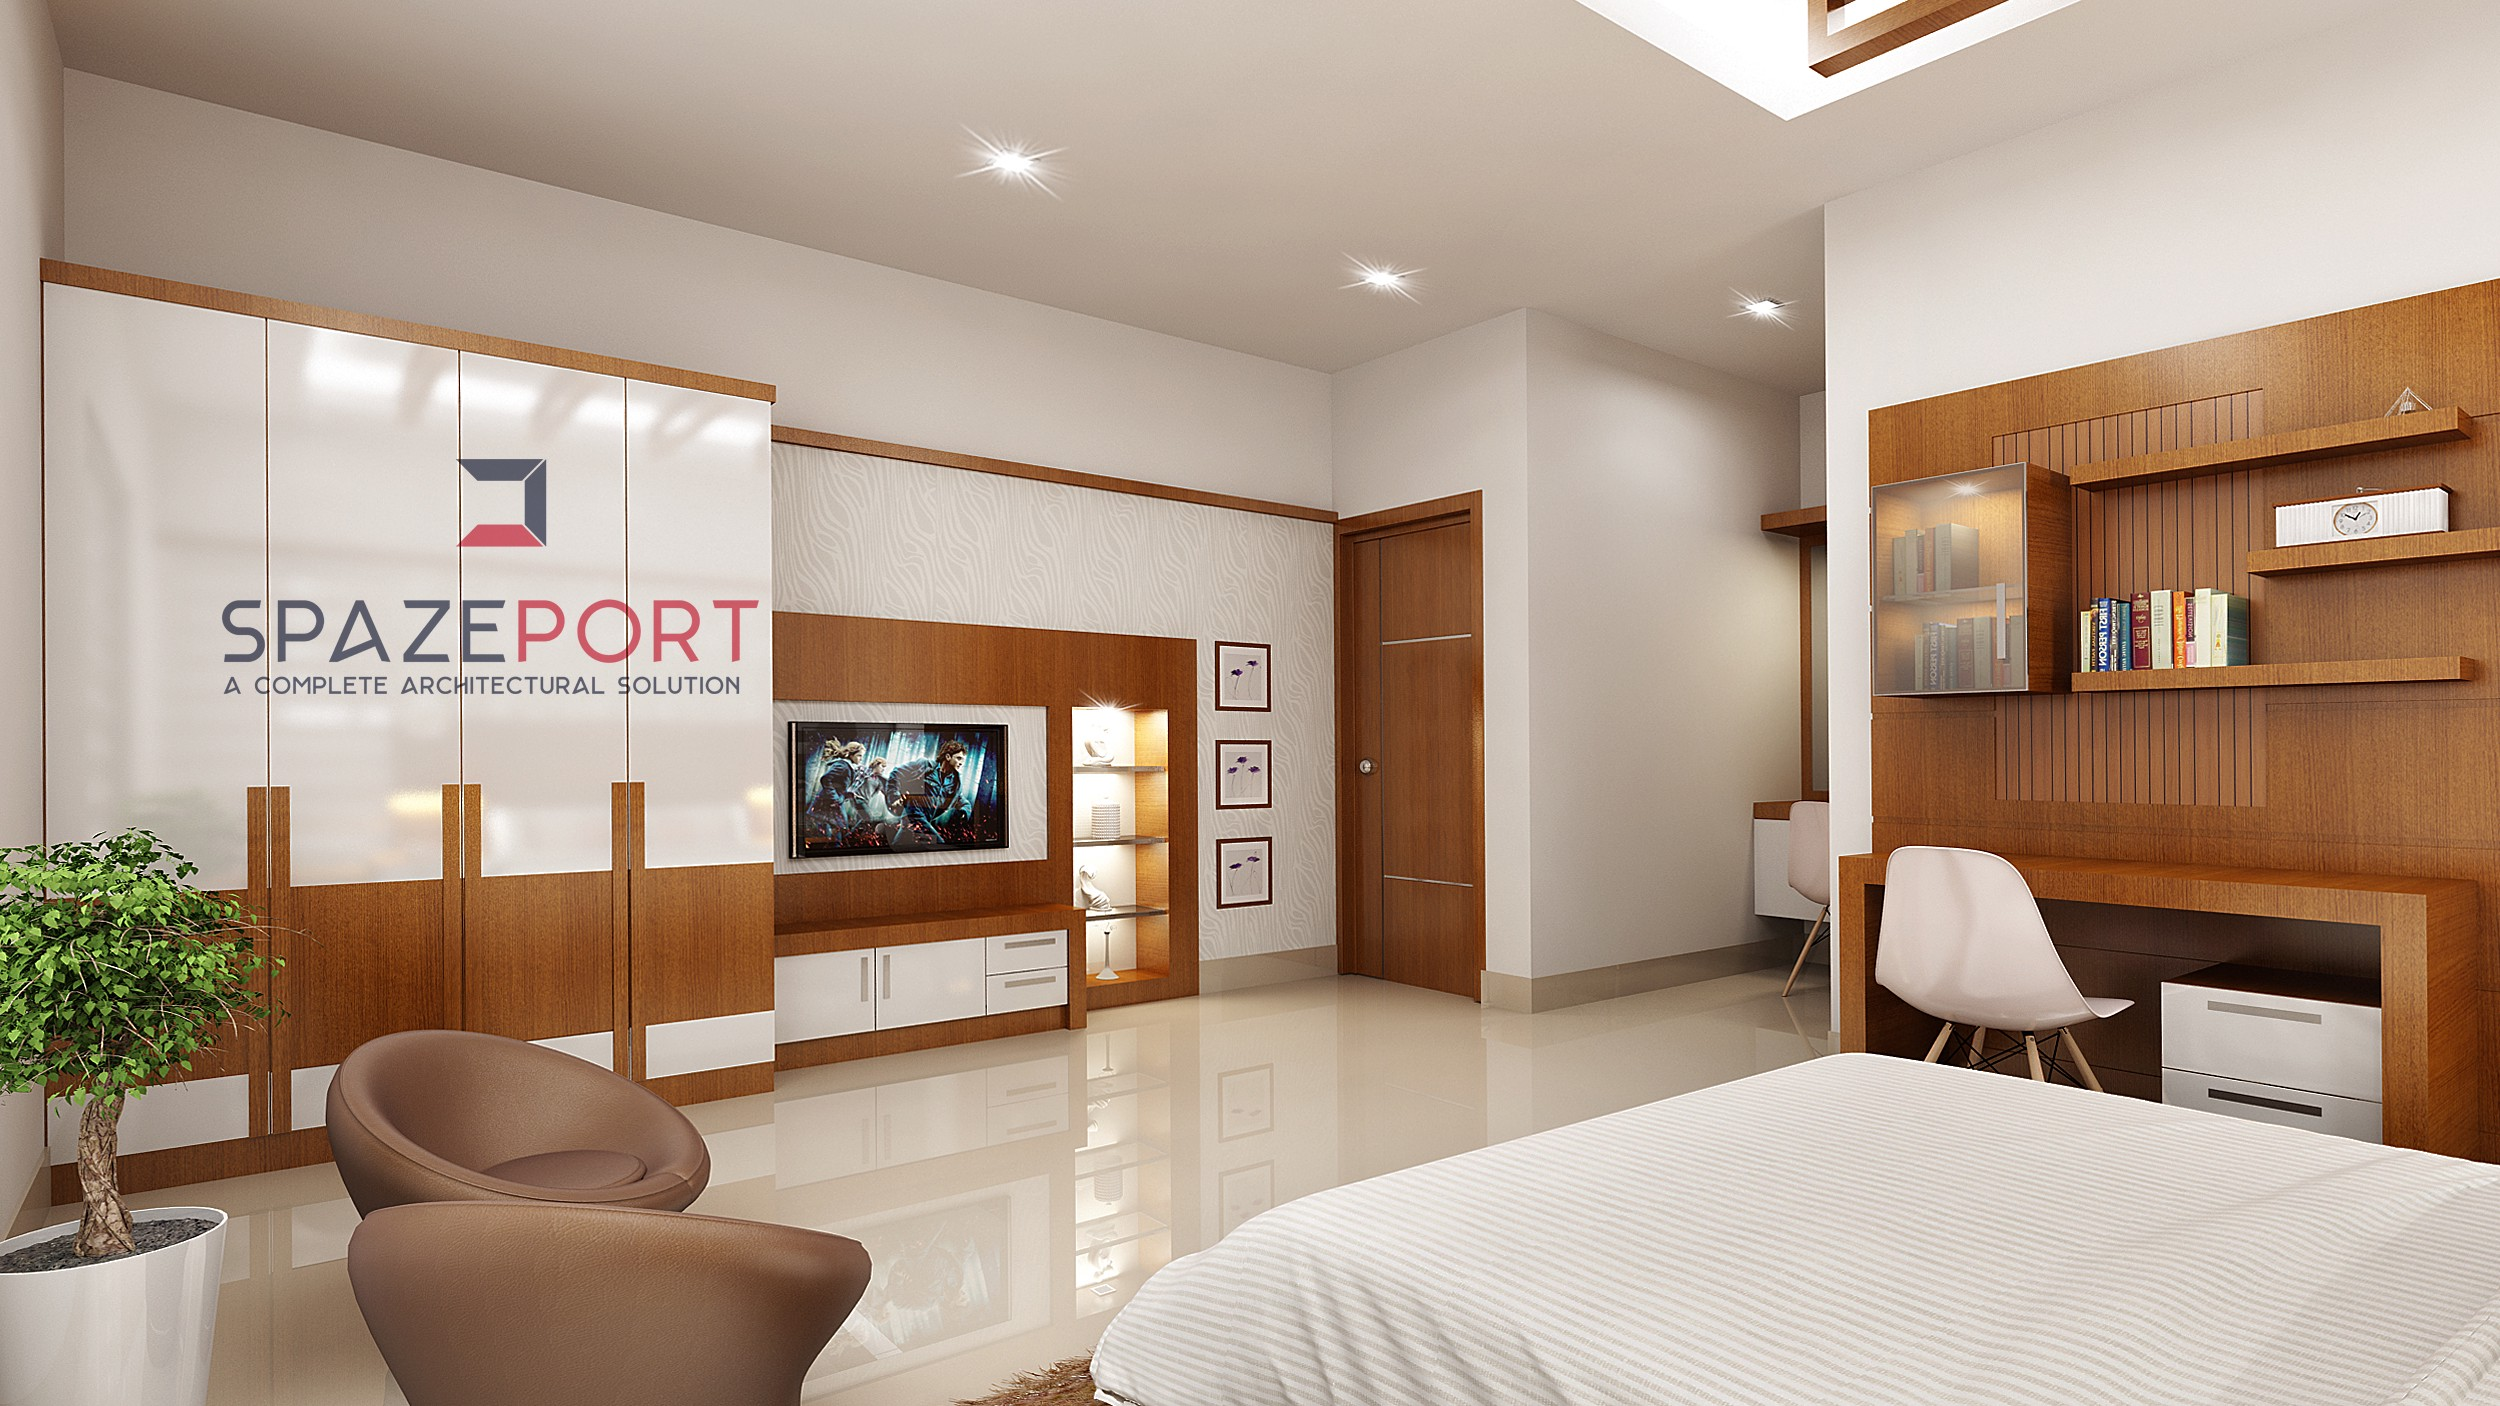 Best Interior Designers In Kottayam By Spaze Port Interior Designers And Architects Aug 2020 Medium